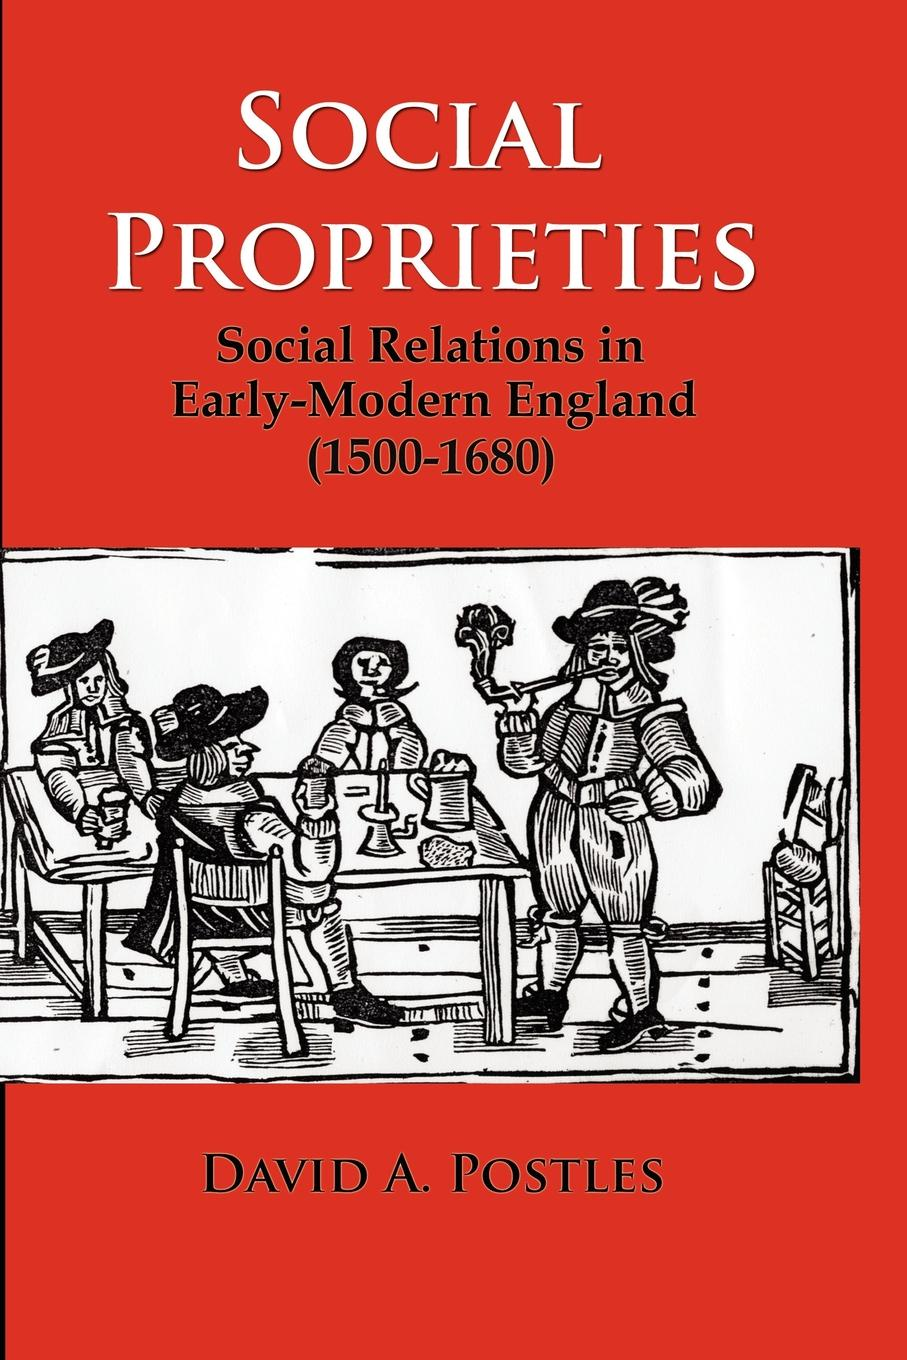 цена на David A. Postles Social Proprieties. Social Relations in Early-Modern England (1500-1680)